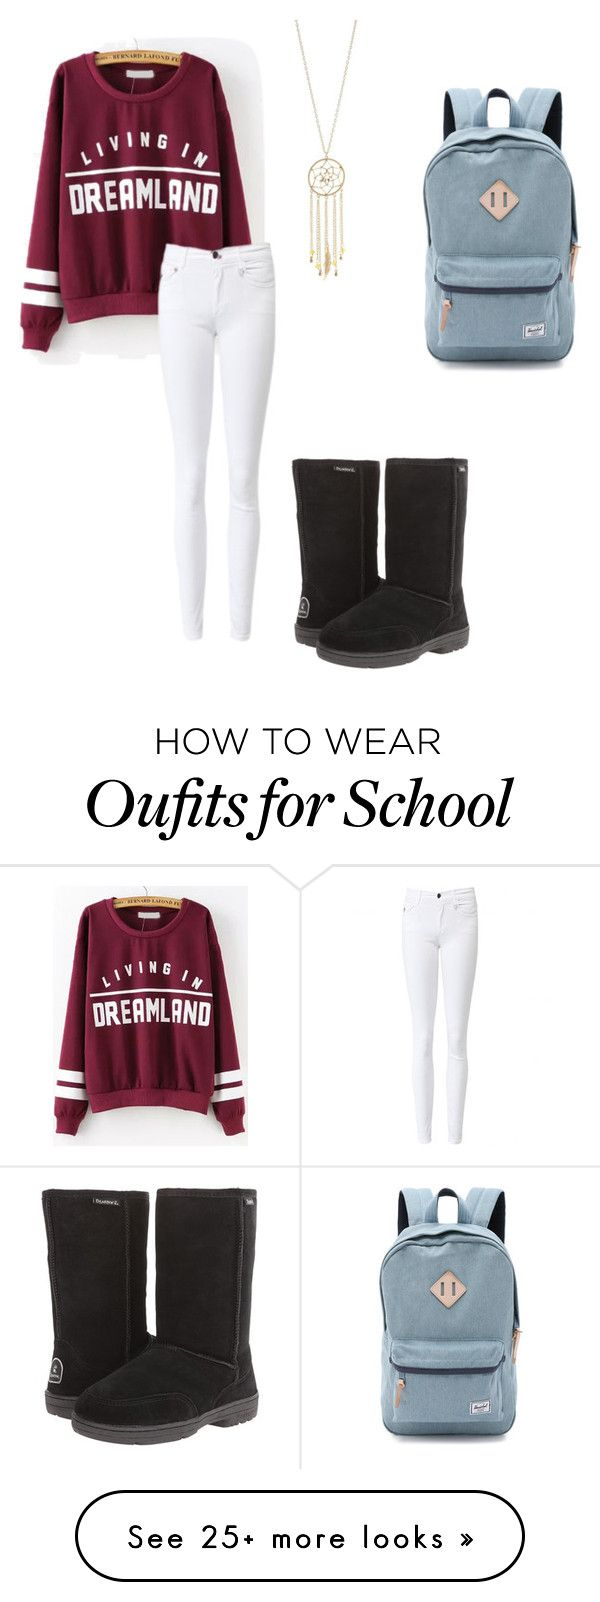 """School -_-"" by avengersfreak on Polyvore featuring Bearpaw, Charlotte Russe and Herschel Supply Co."